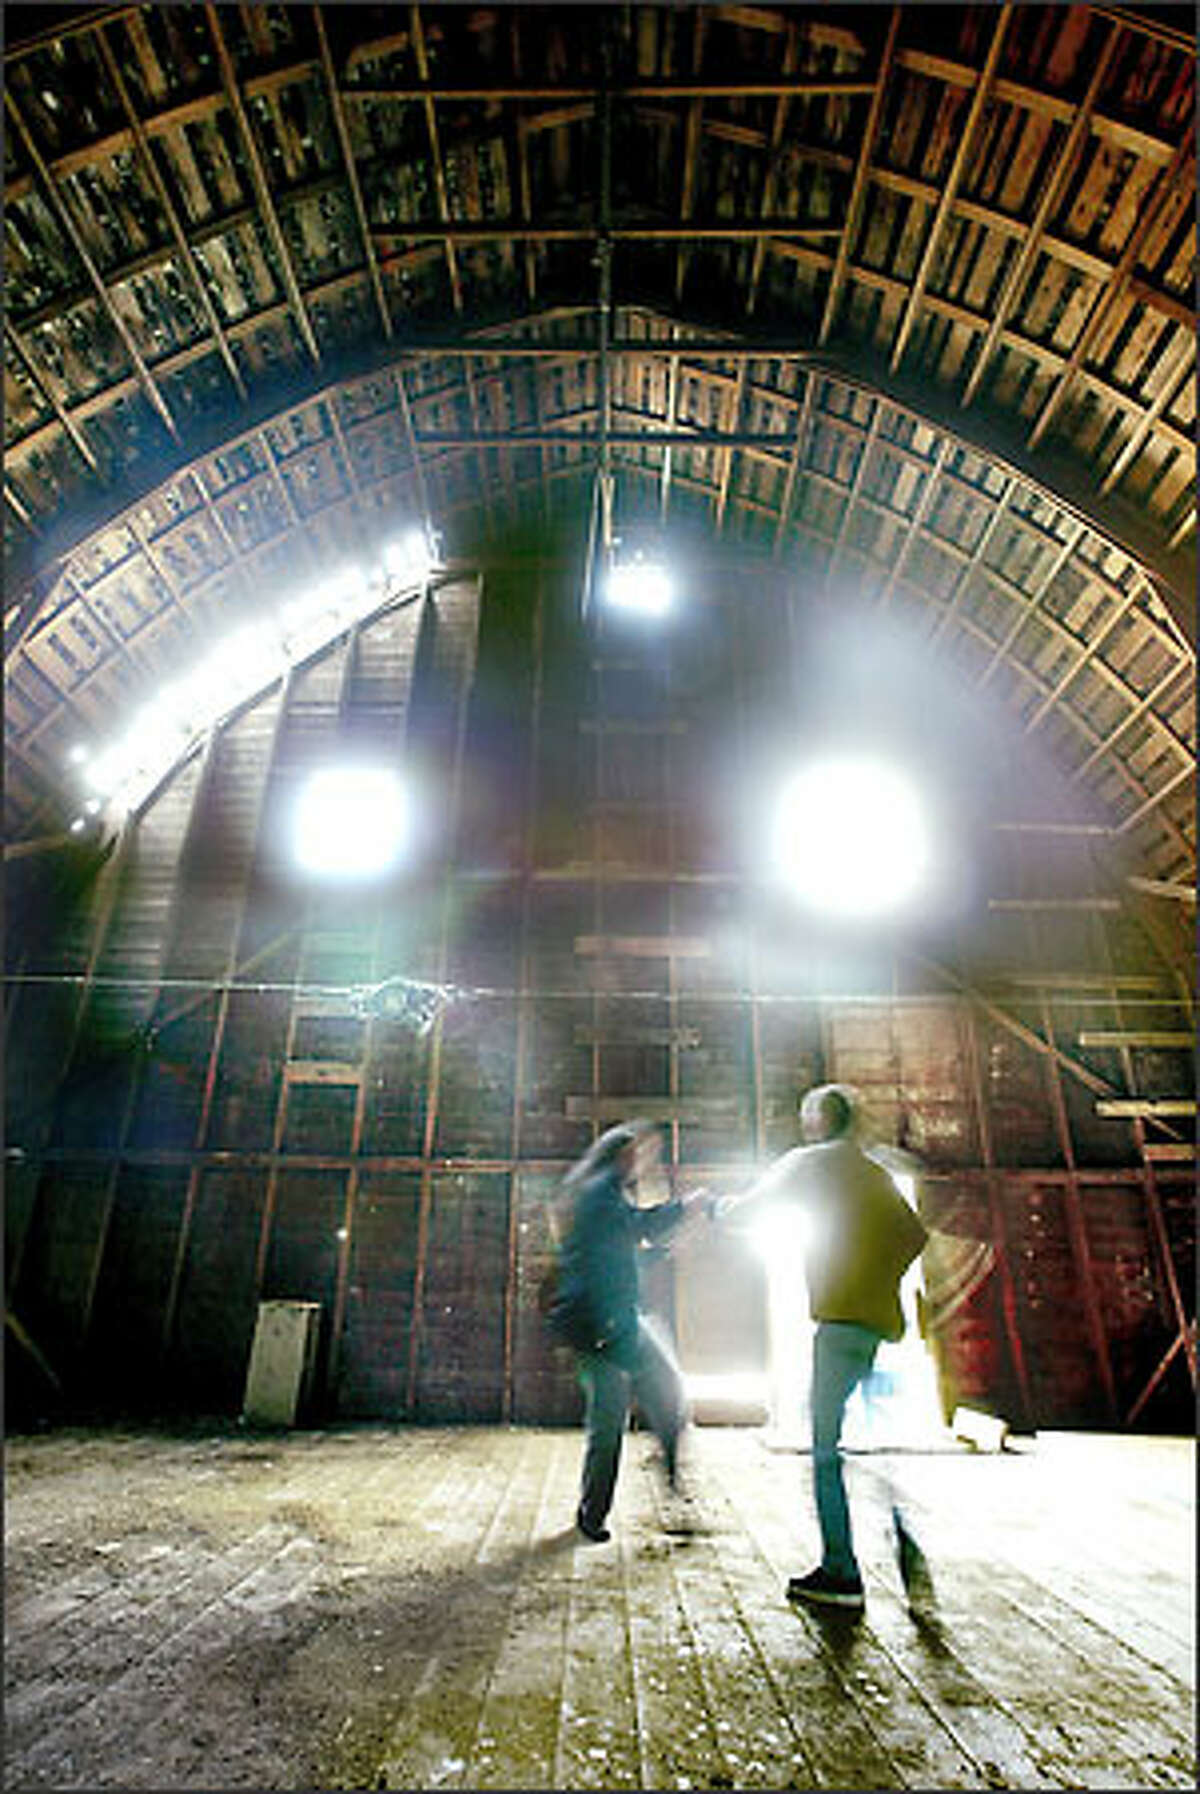 Lee Grumman, at left, and Paula McDonald, board members of the Duvall Foundation for the Arts, are a blur as they break into an impromptu dance during a visit Tuesday to the Thayer Barn in Duvall.